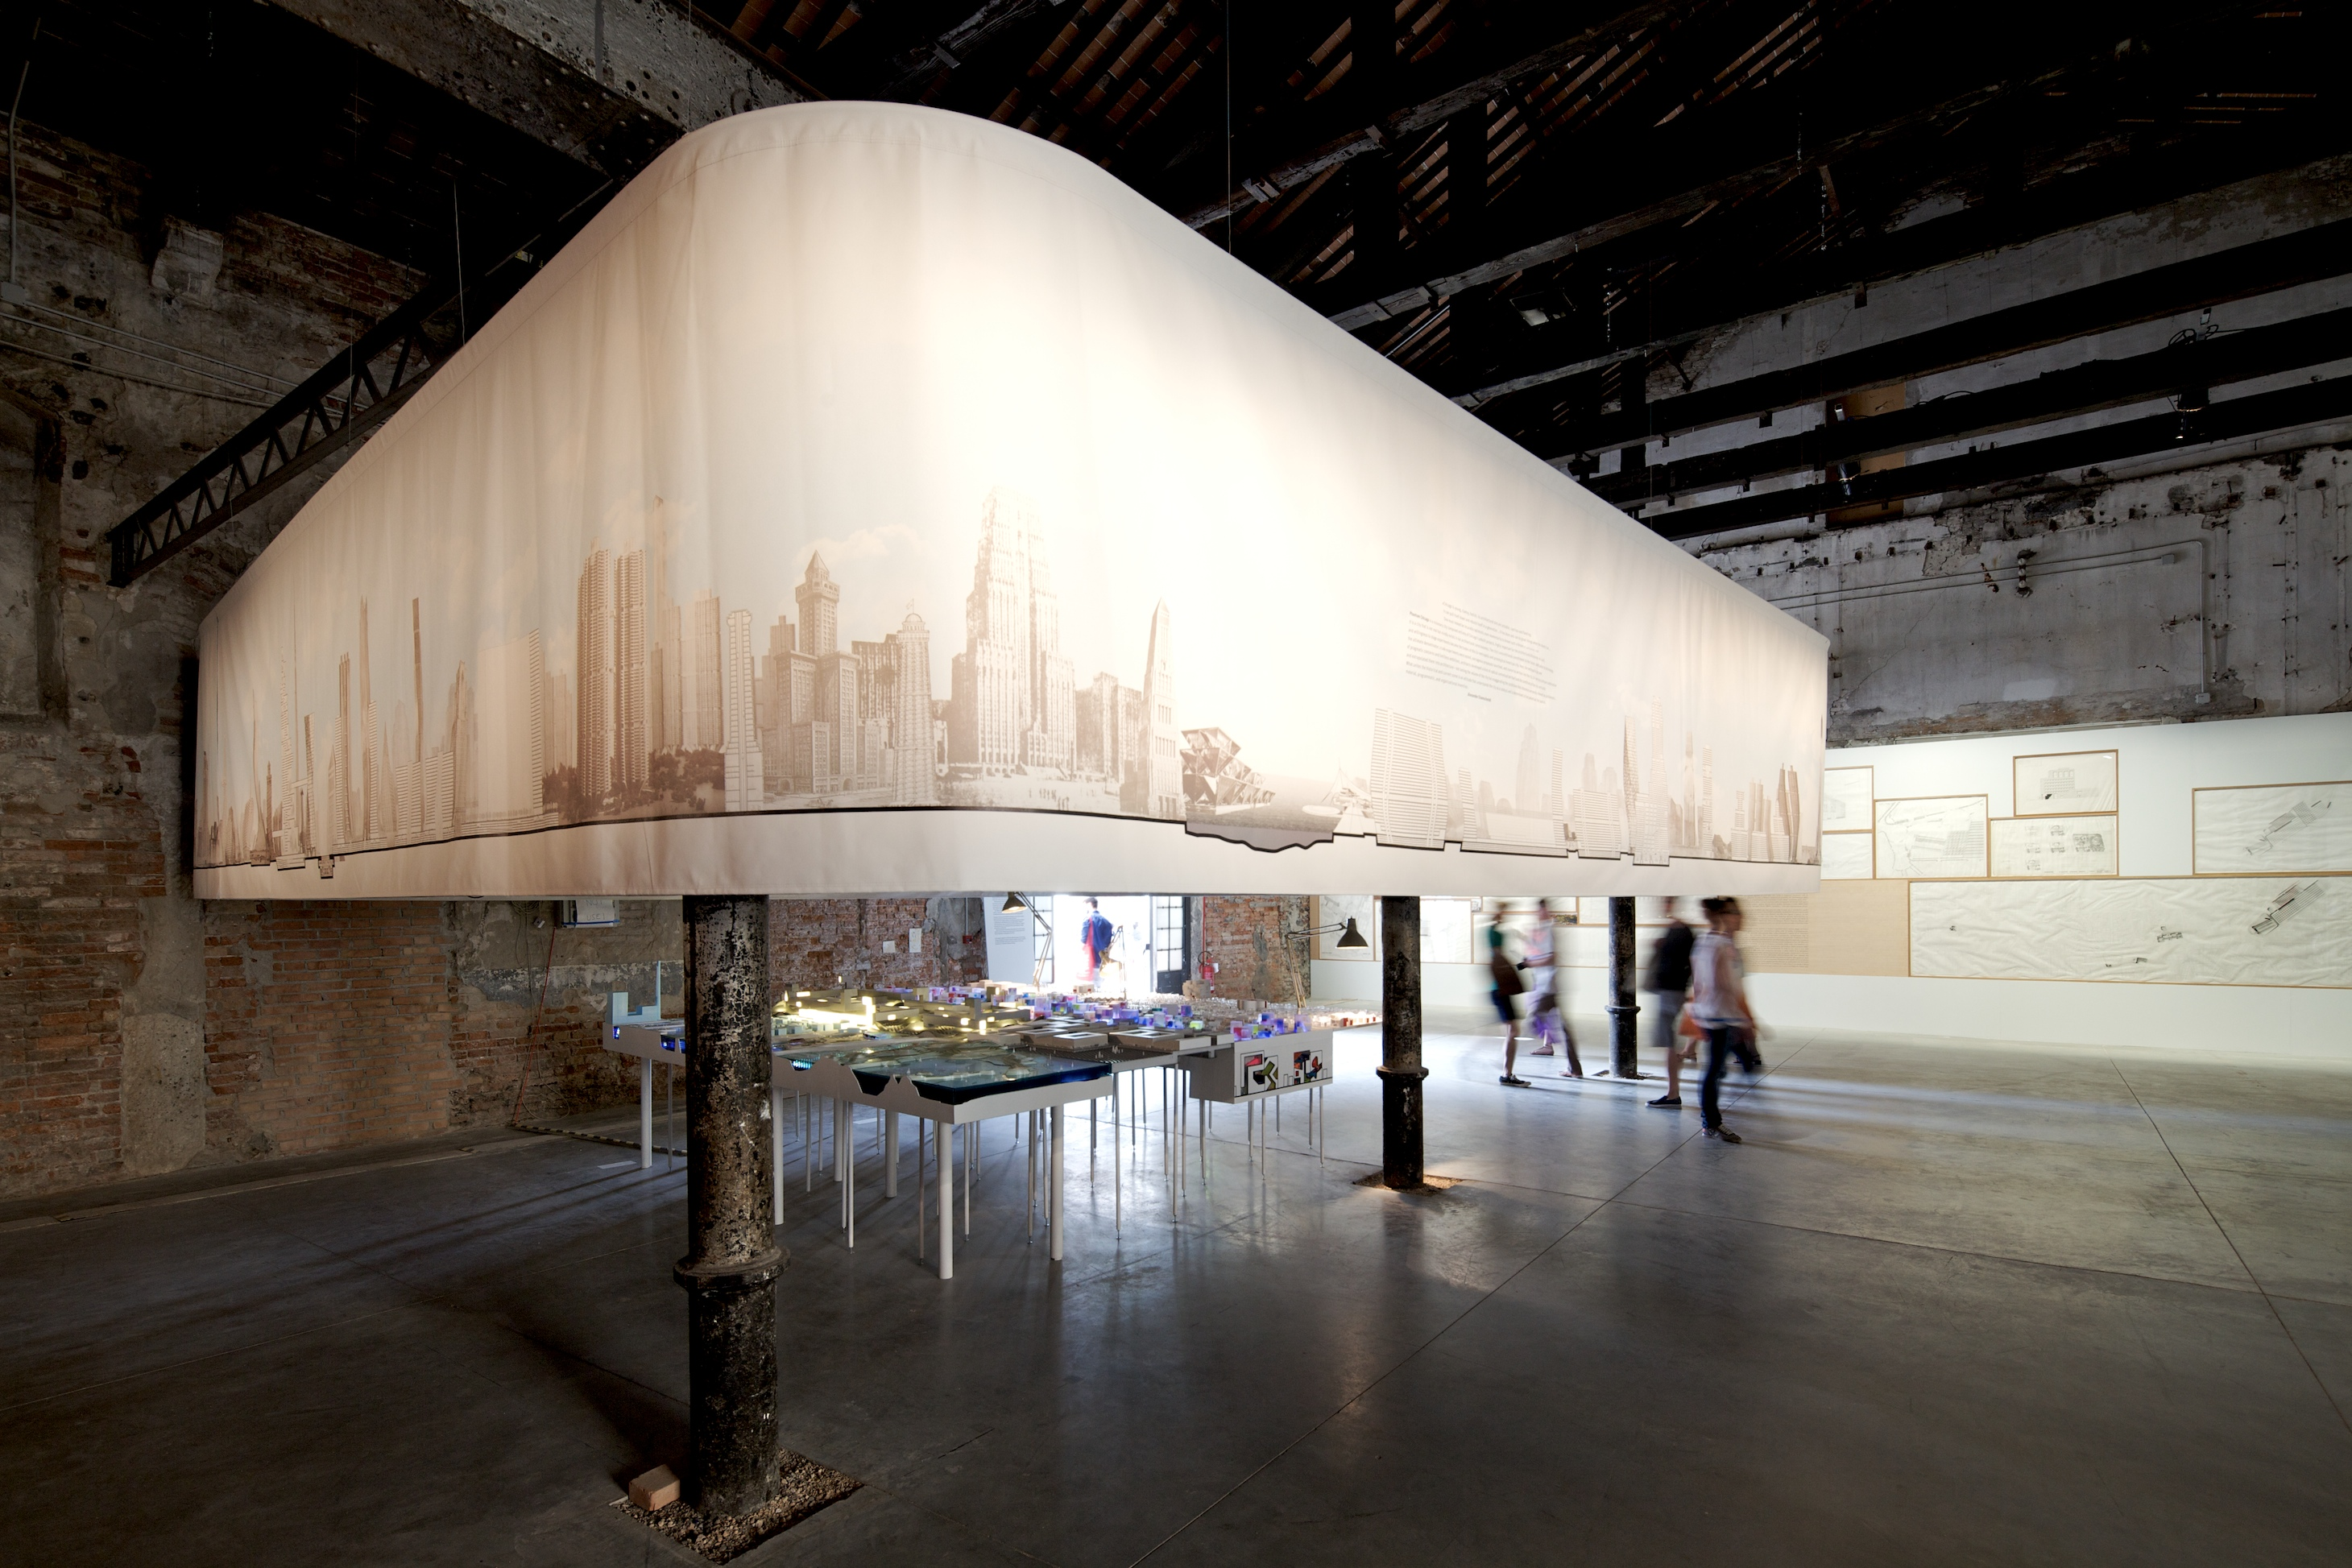 Bienal de Veneza 2012: 'Chicago Team: City Works', © Nico Saieh